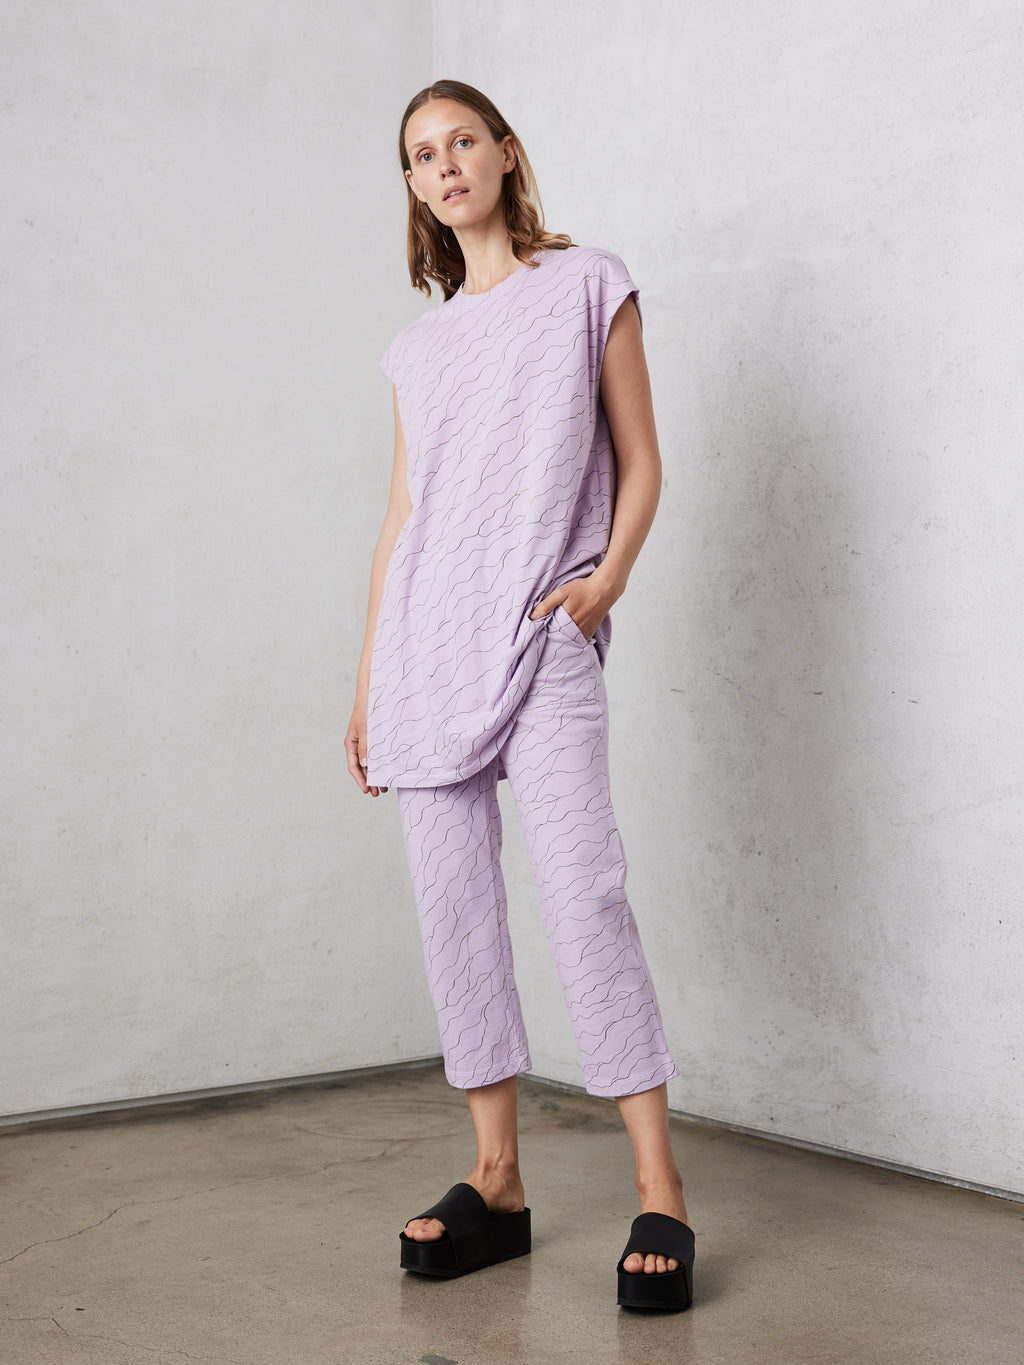 Lavender Waves Cotton Sleeveless T-shirt Dress